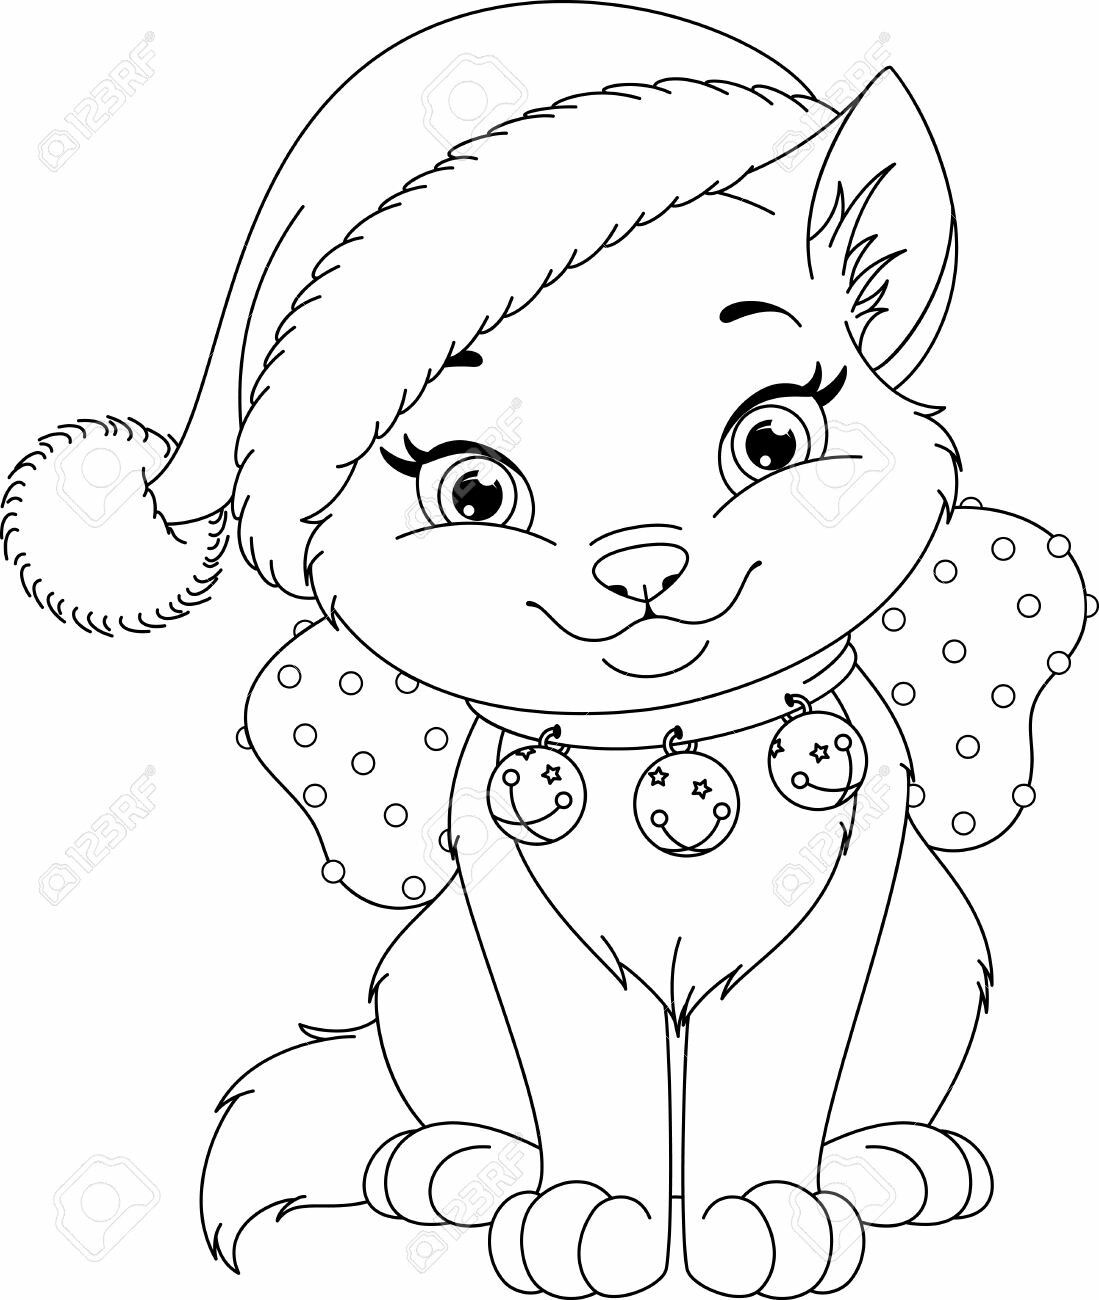 Christmas Coloring Page Kitten